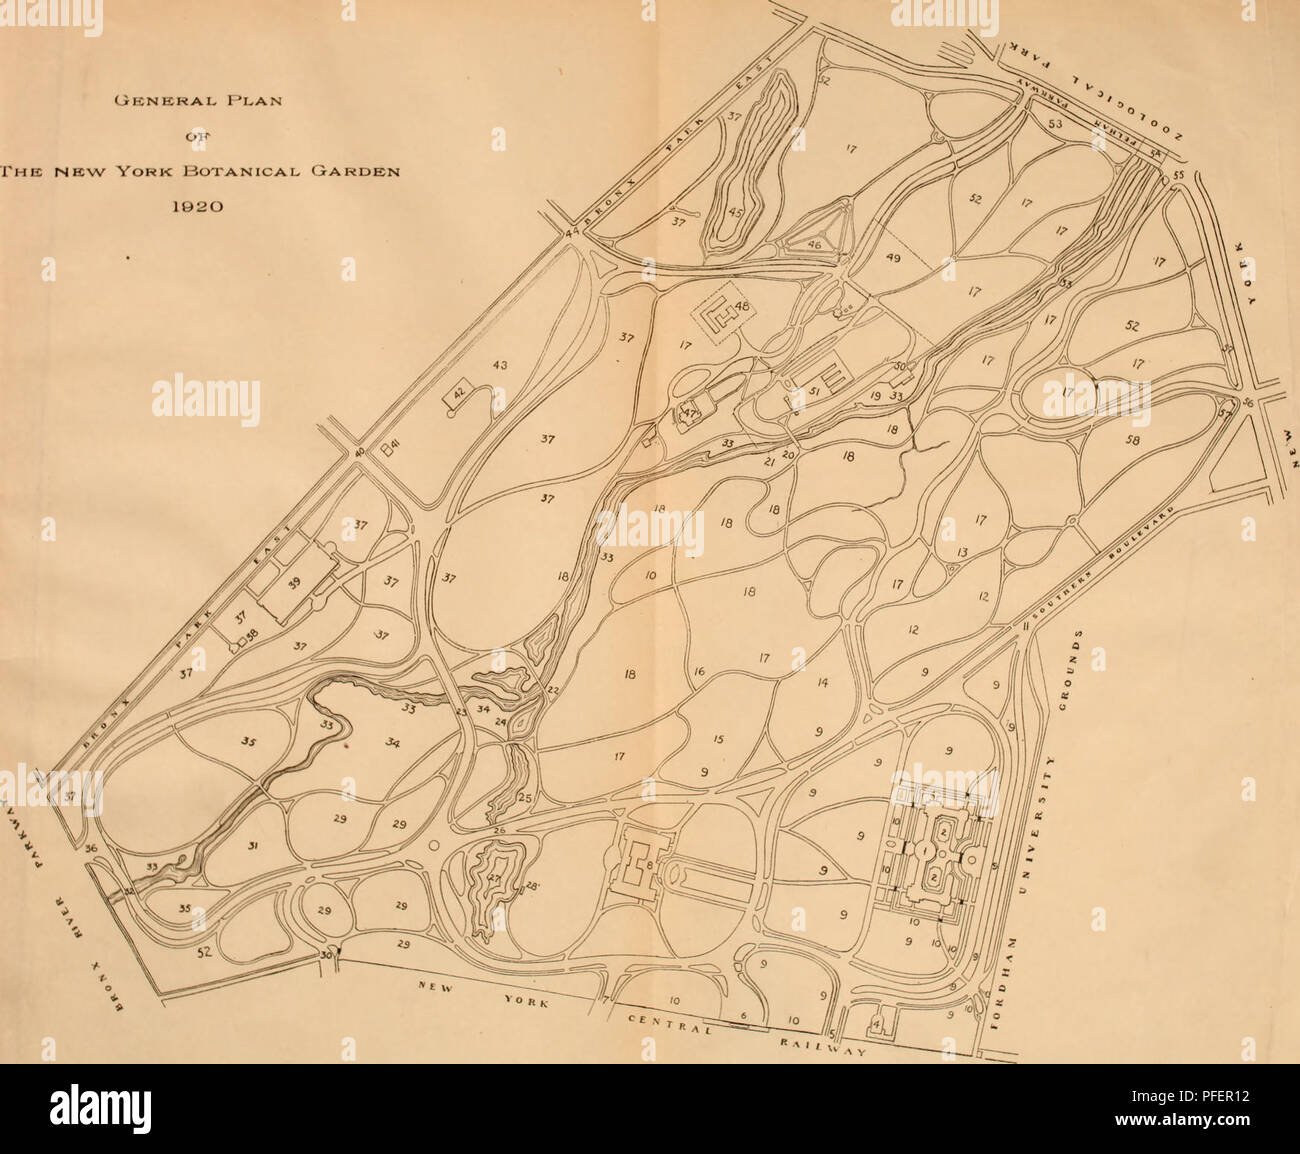 Map Of New York Botanical Garden.Descriptive Guide To The Grounds Buildings And Collections General